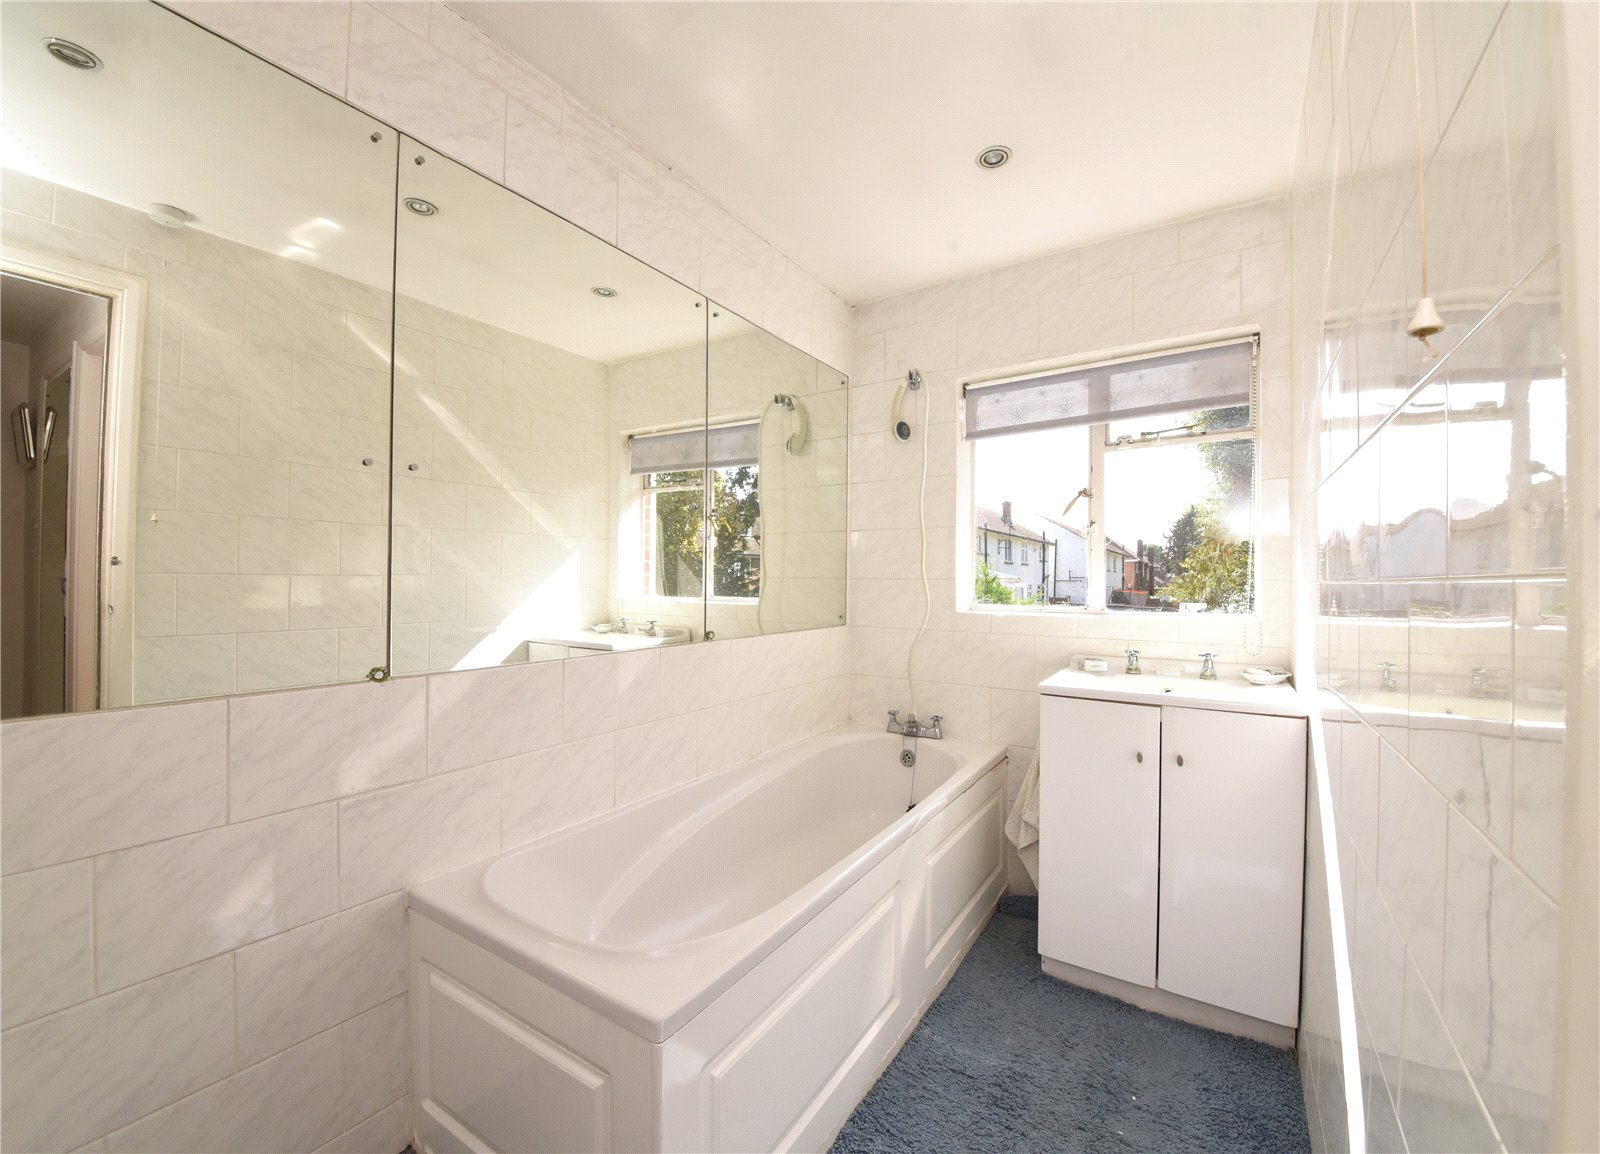 3 bed house for sale in West Finchley, N3 1PB  - Property Image 11